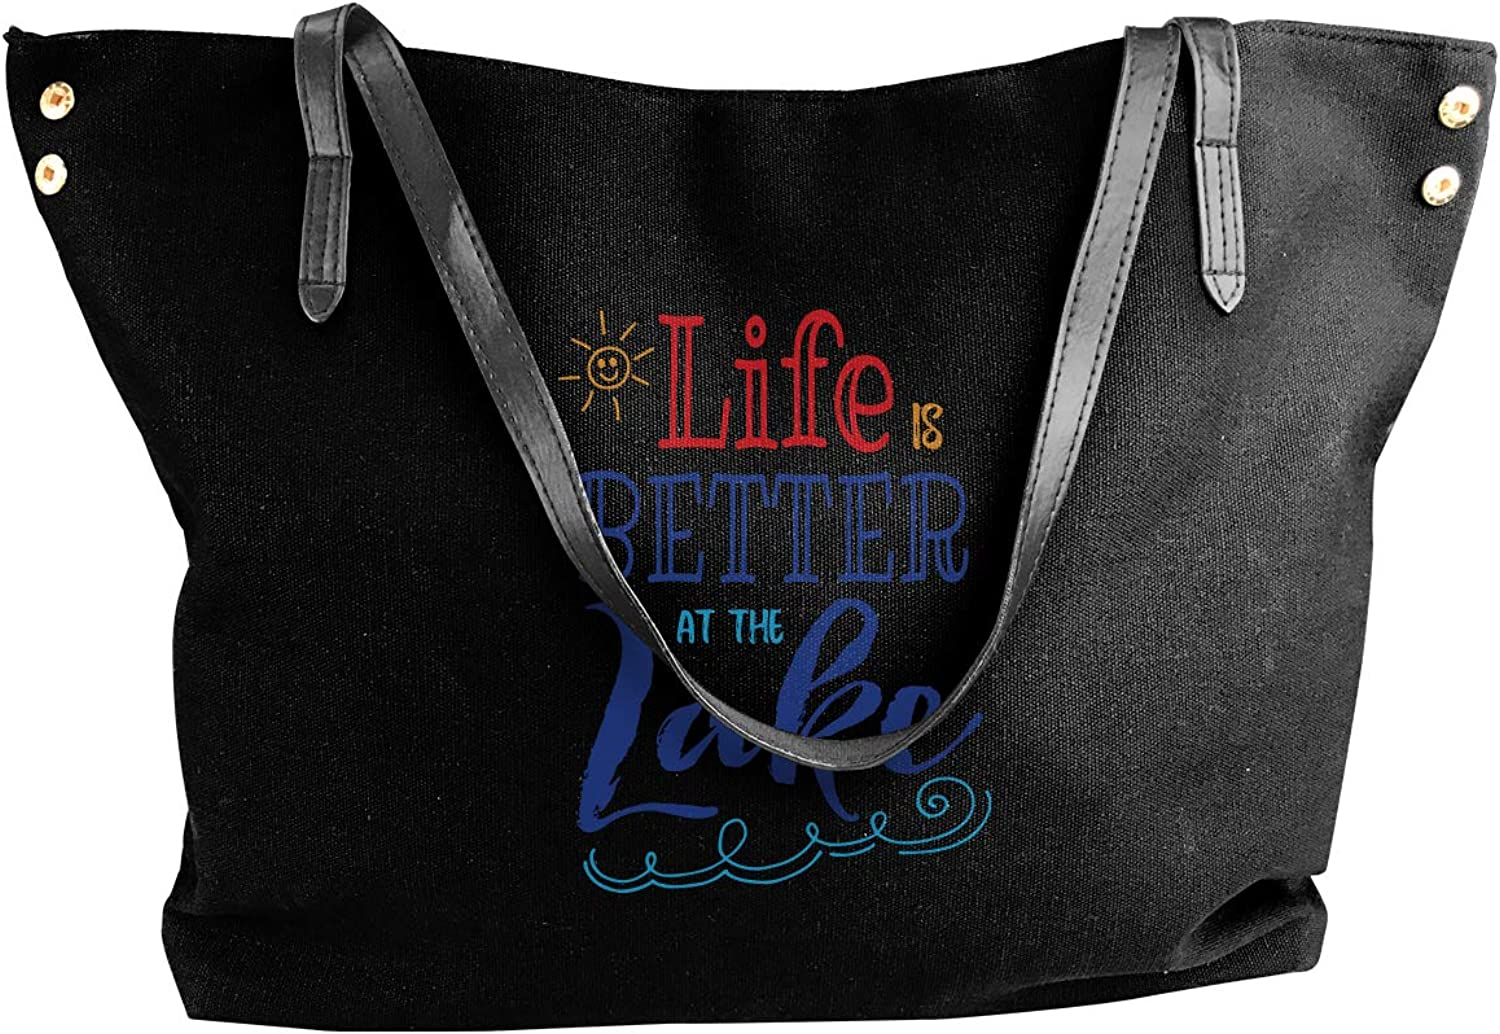 Life Is Better At The Lake 1 Women'S Casual Canvas Shoulder Bag For Work Handbag